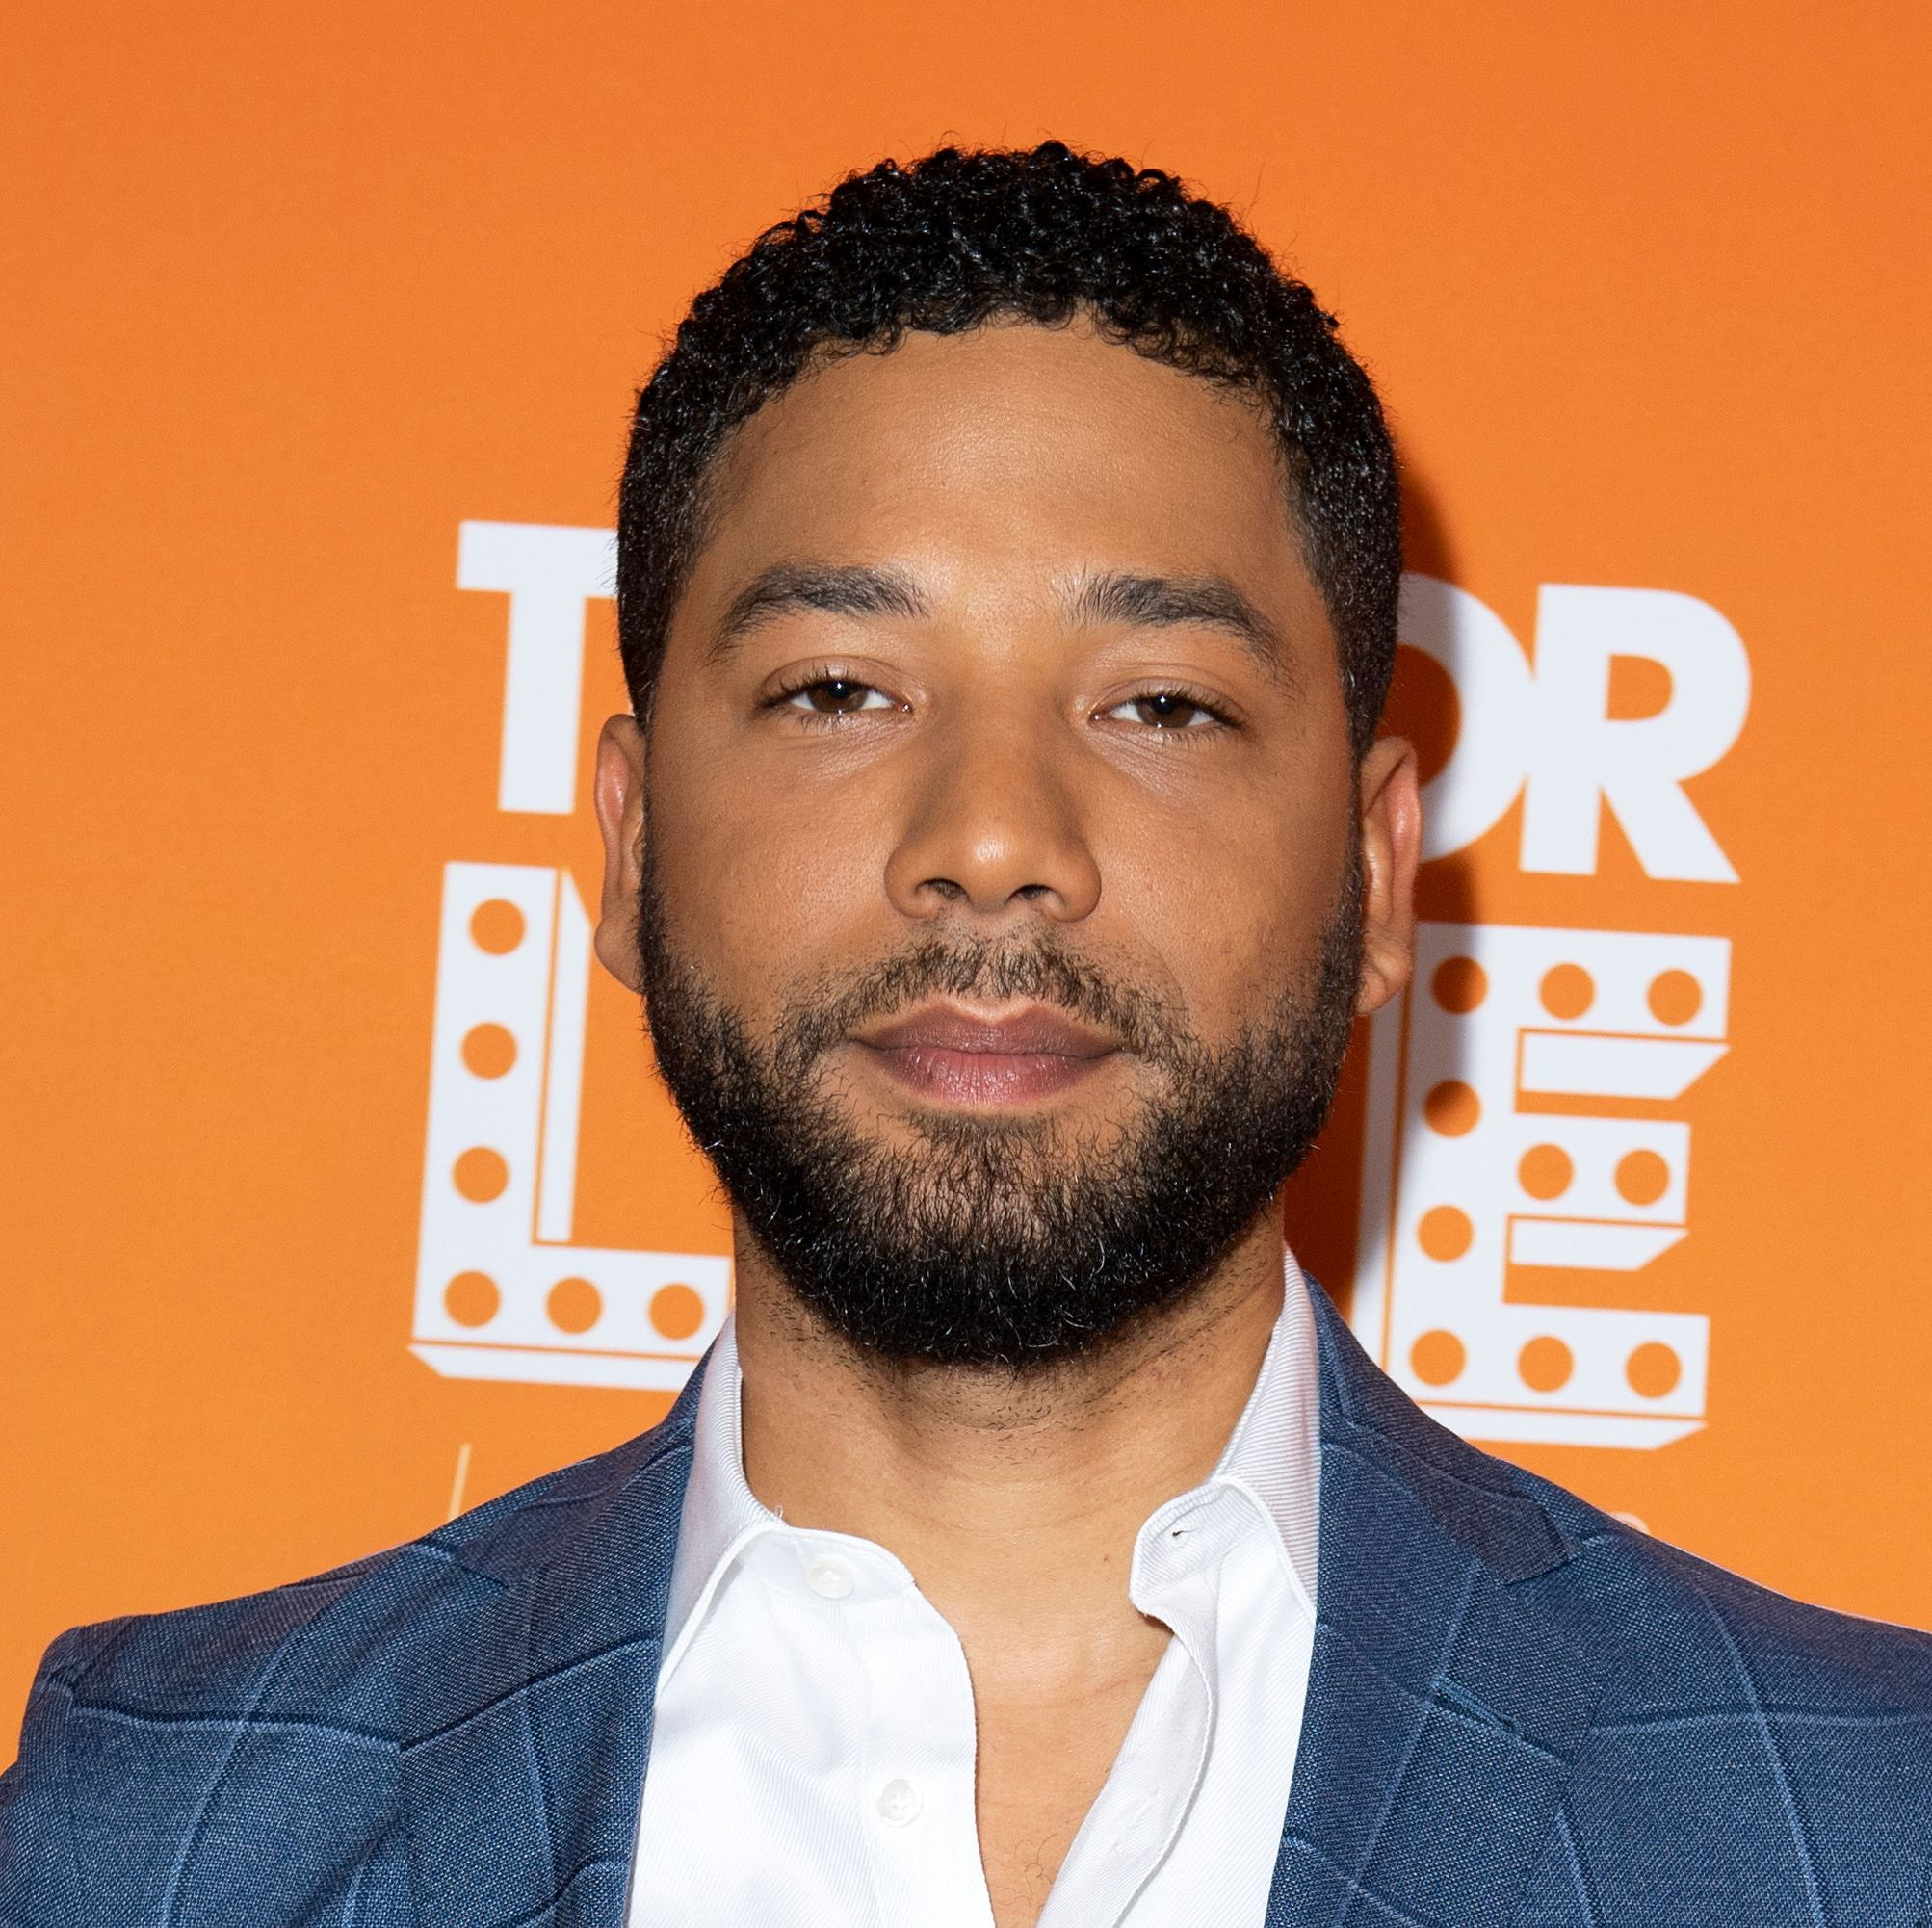 The Full Timeline of the Jussie Smollett Attack Investigation